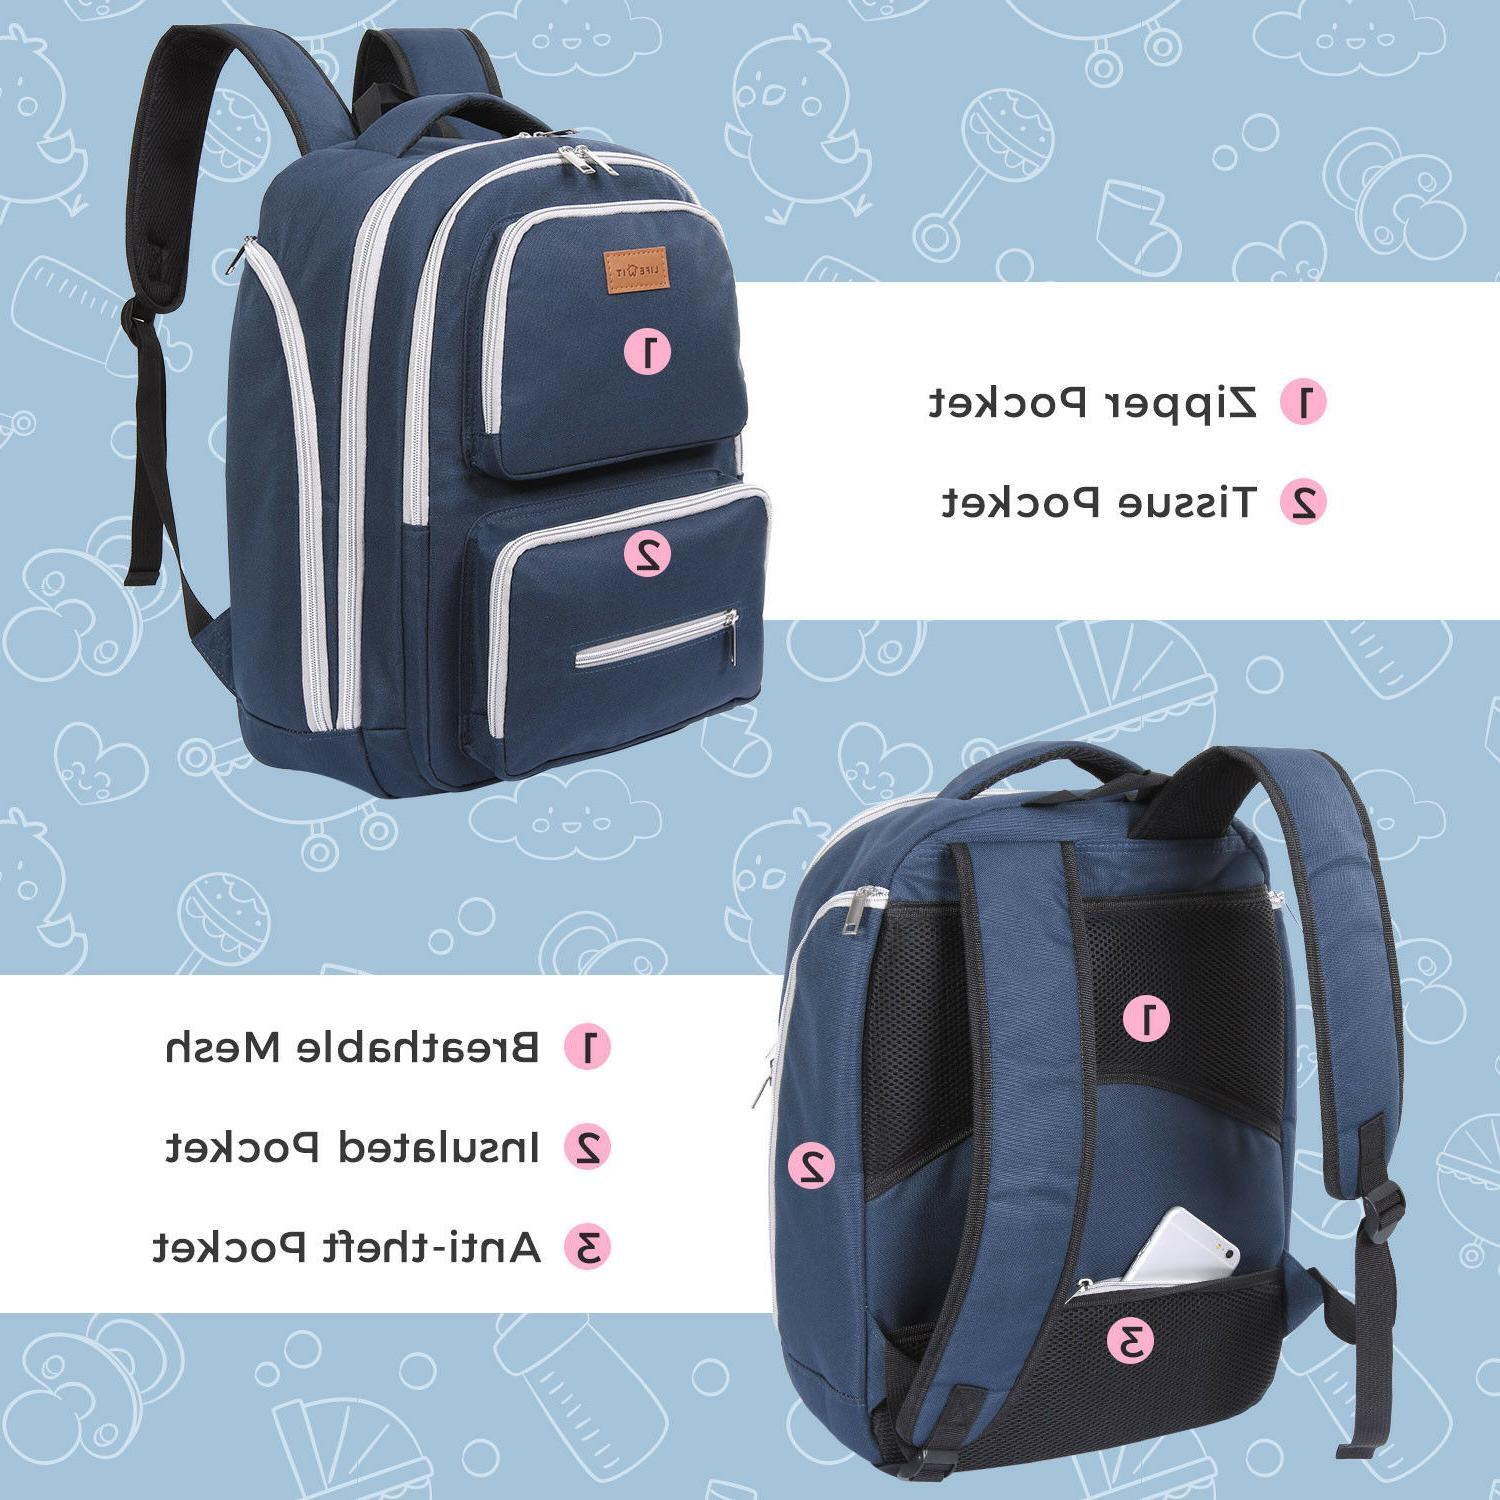 Lifewit Baby Bag Backpack Mummy Travel